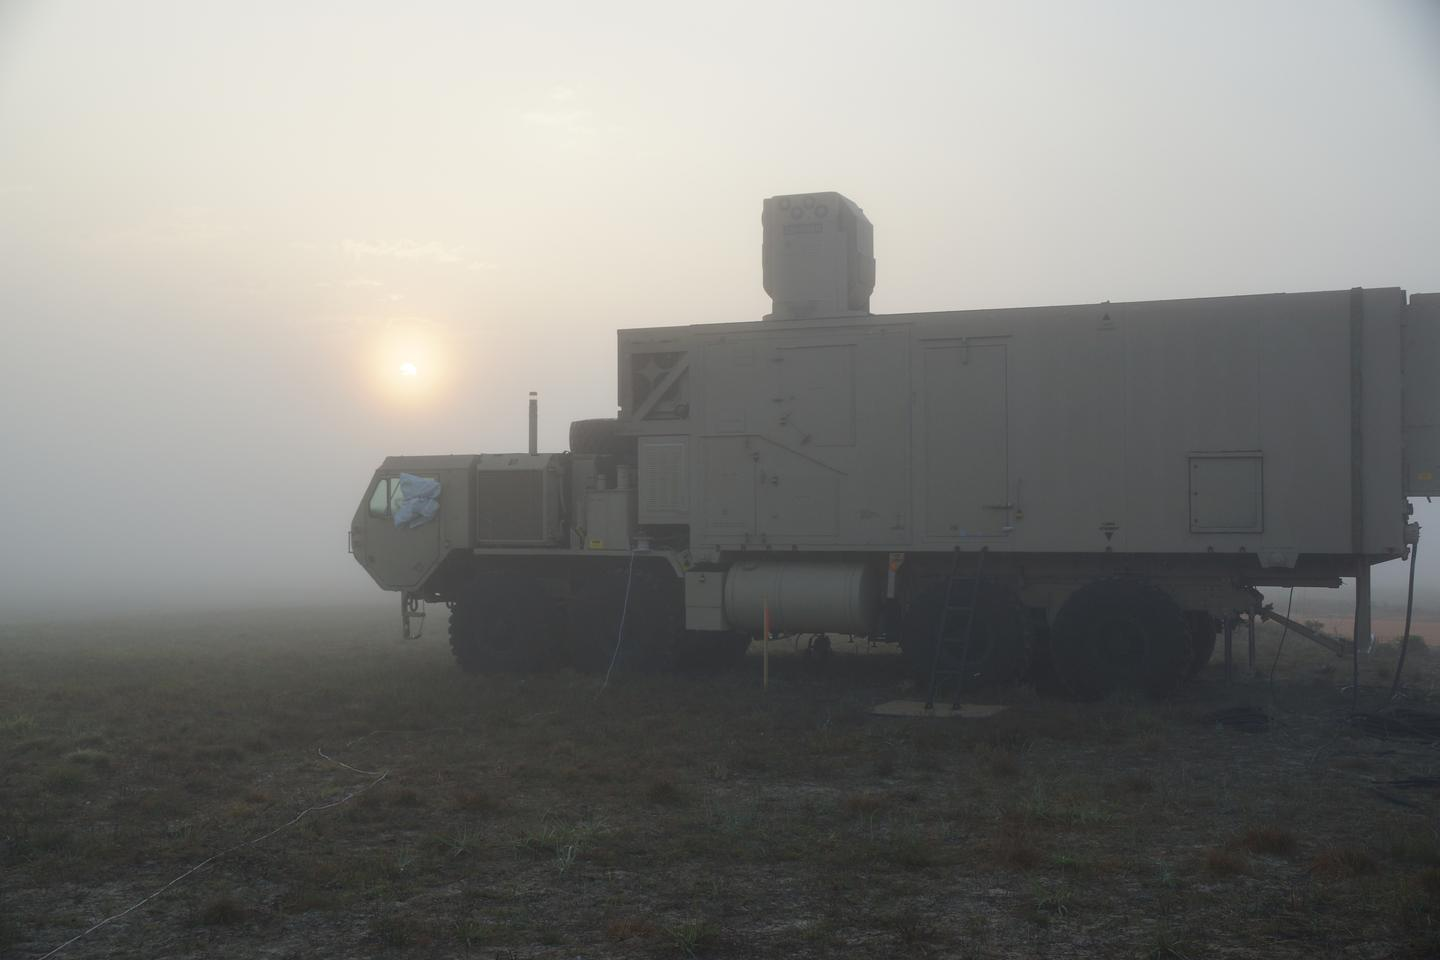 The HEL-MD has successfully engaged targets in foggy conditions